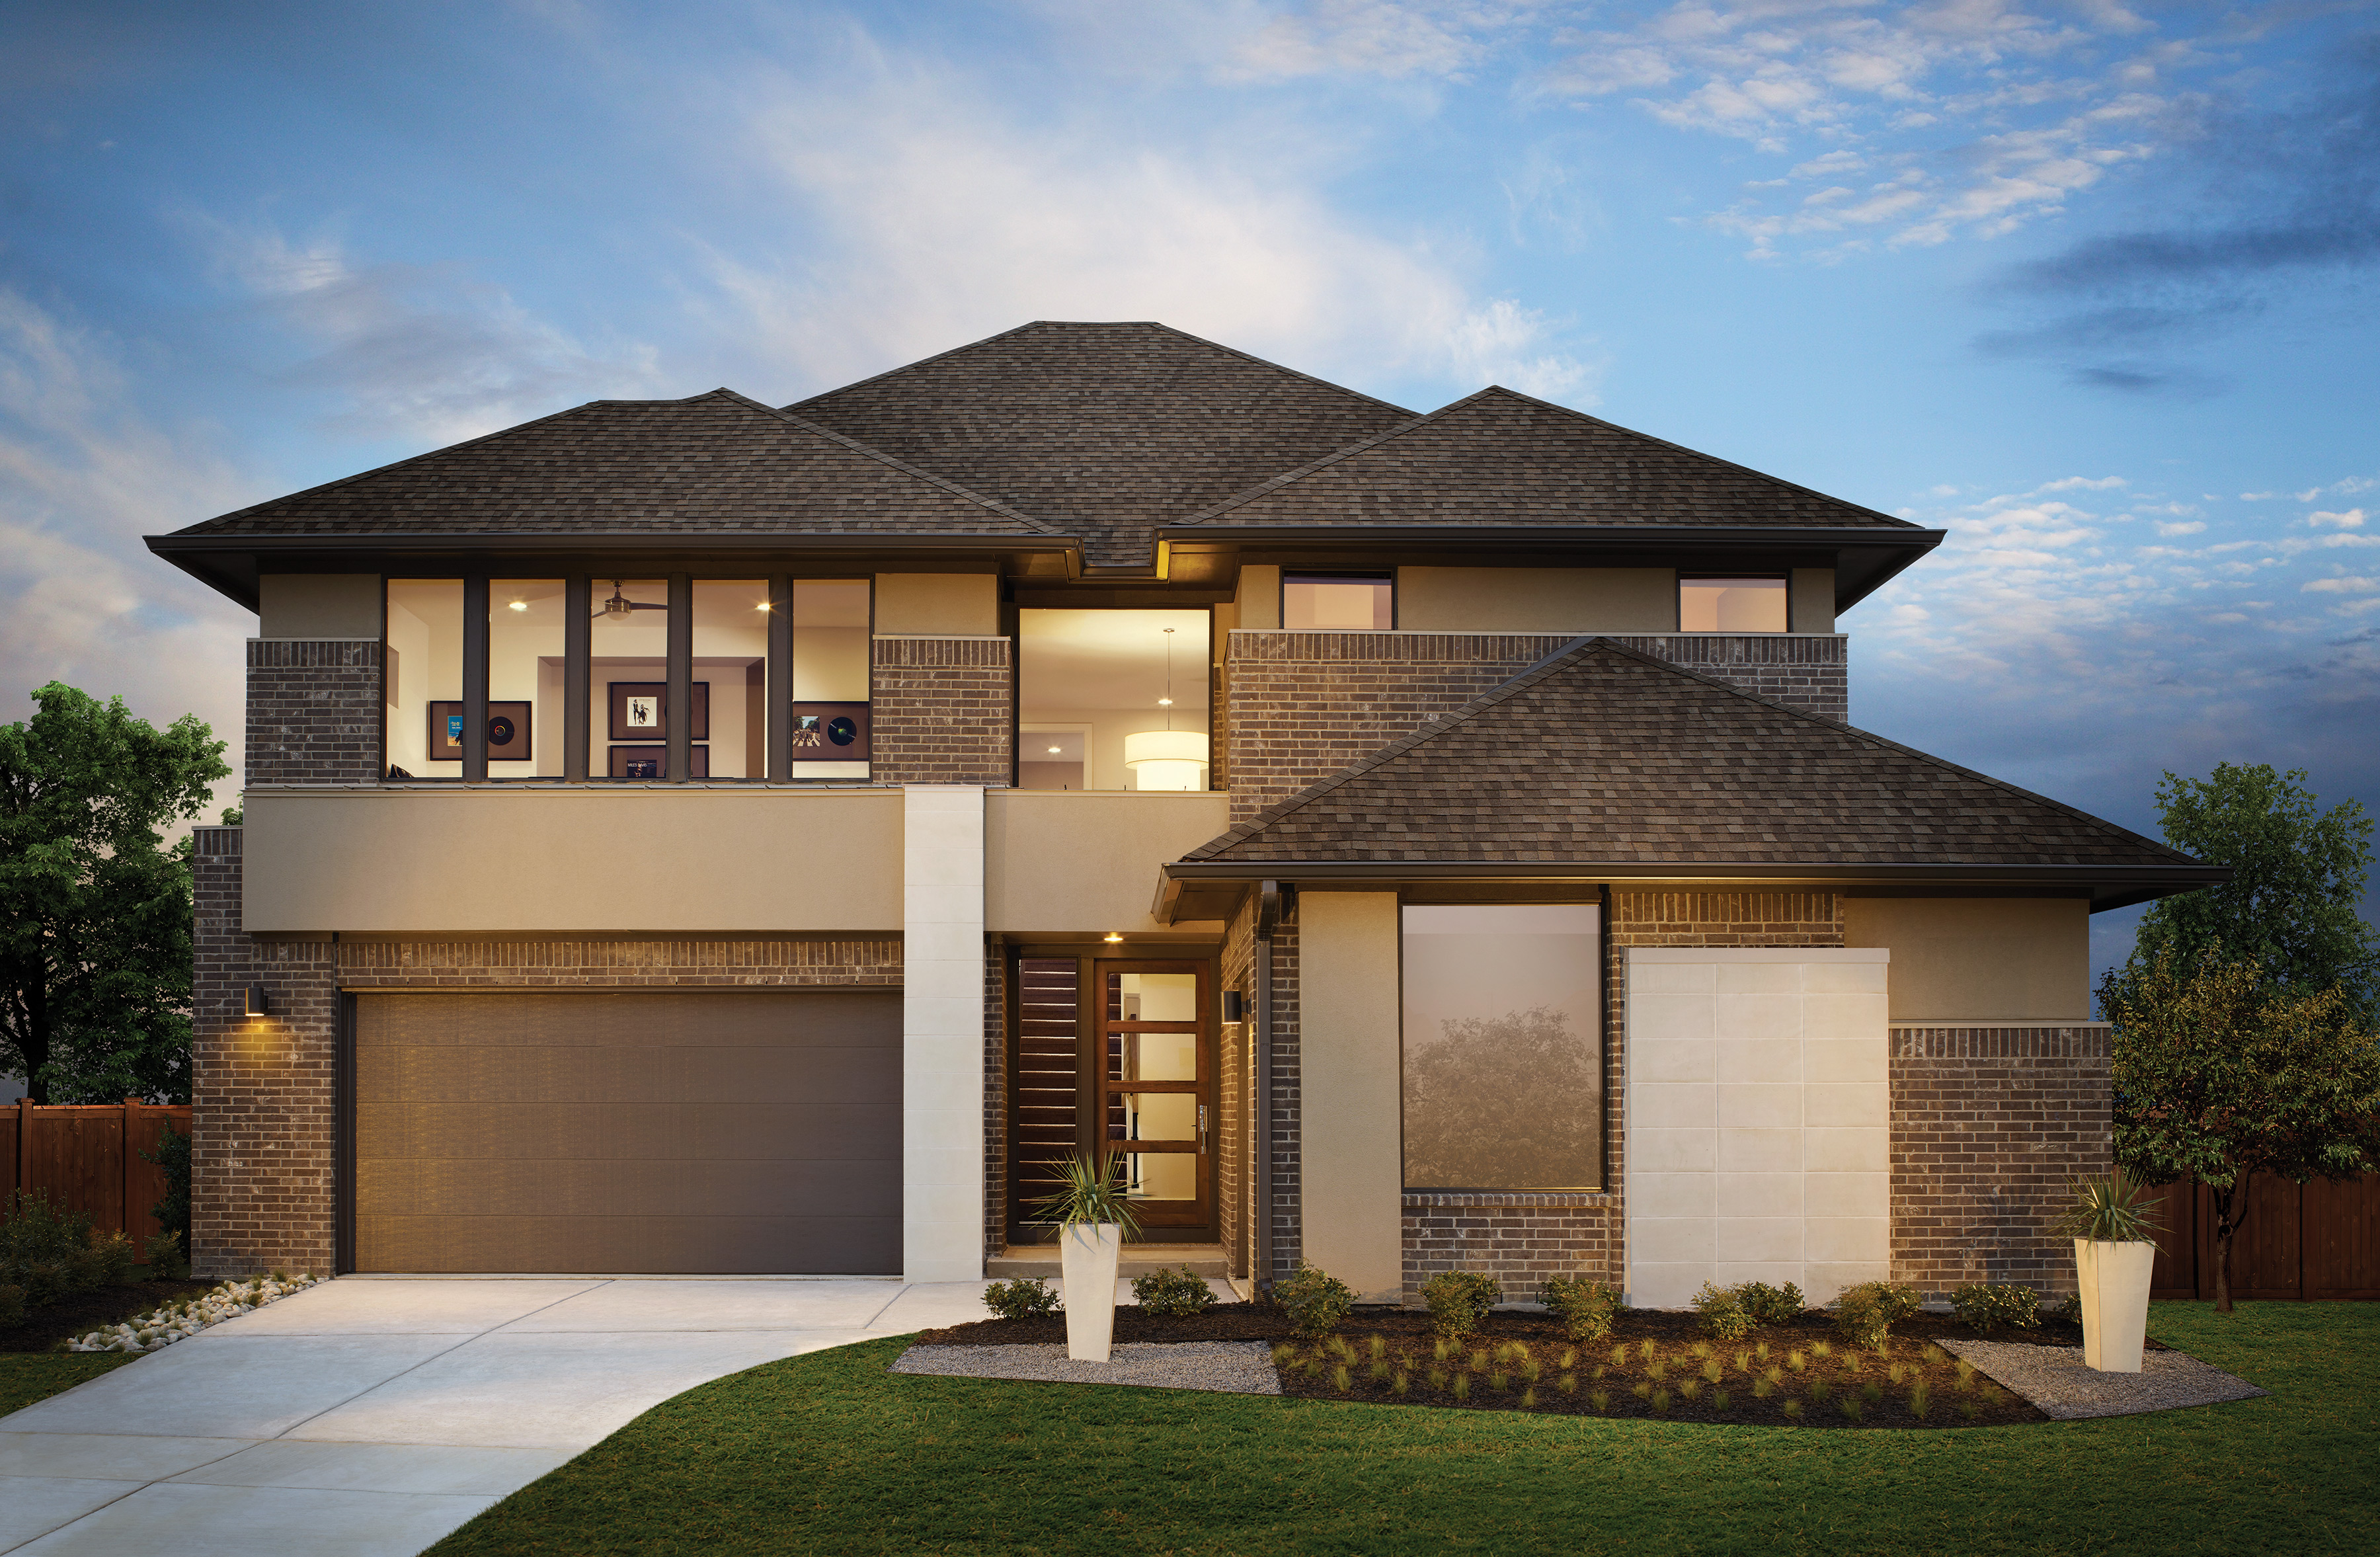 Mainvue Homes Brings Modern Style Feature Rich Homes To